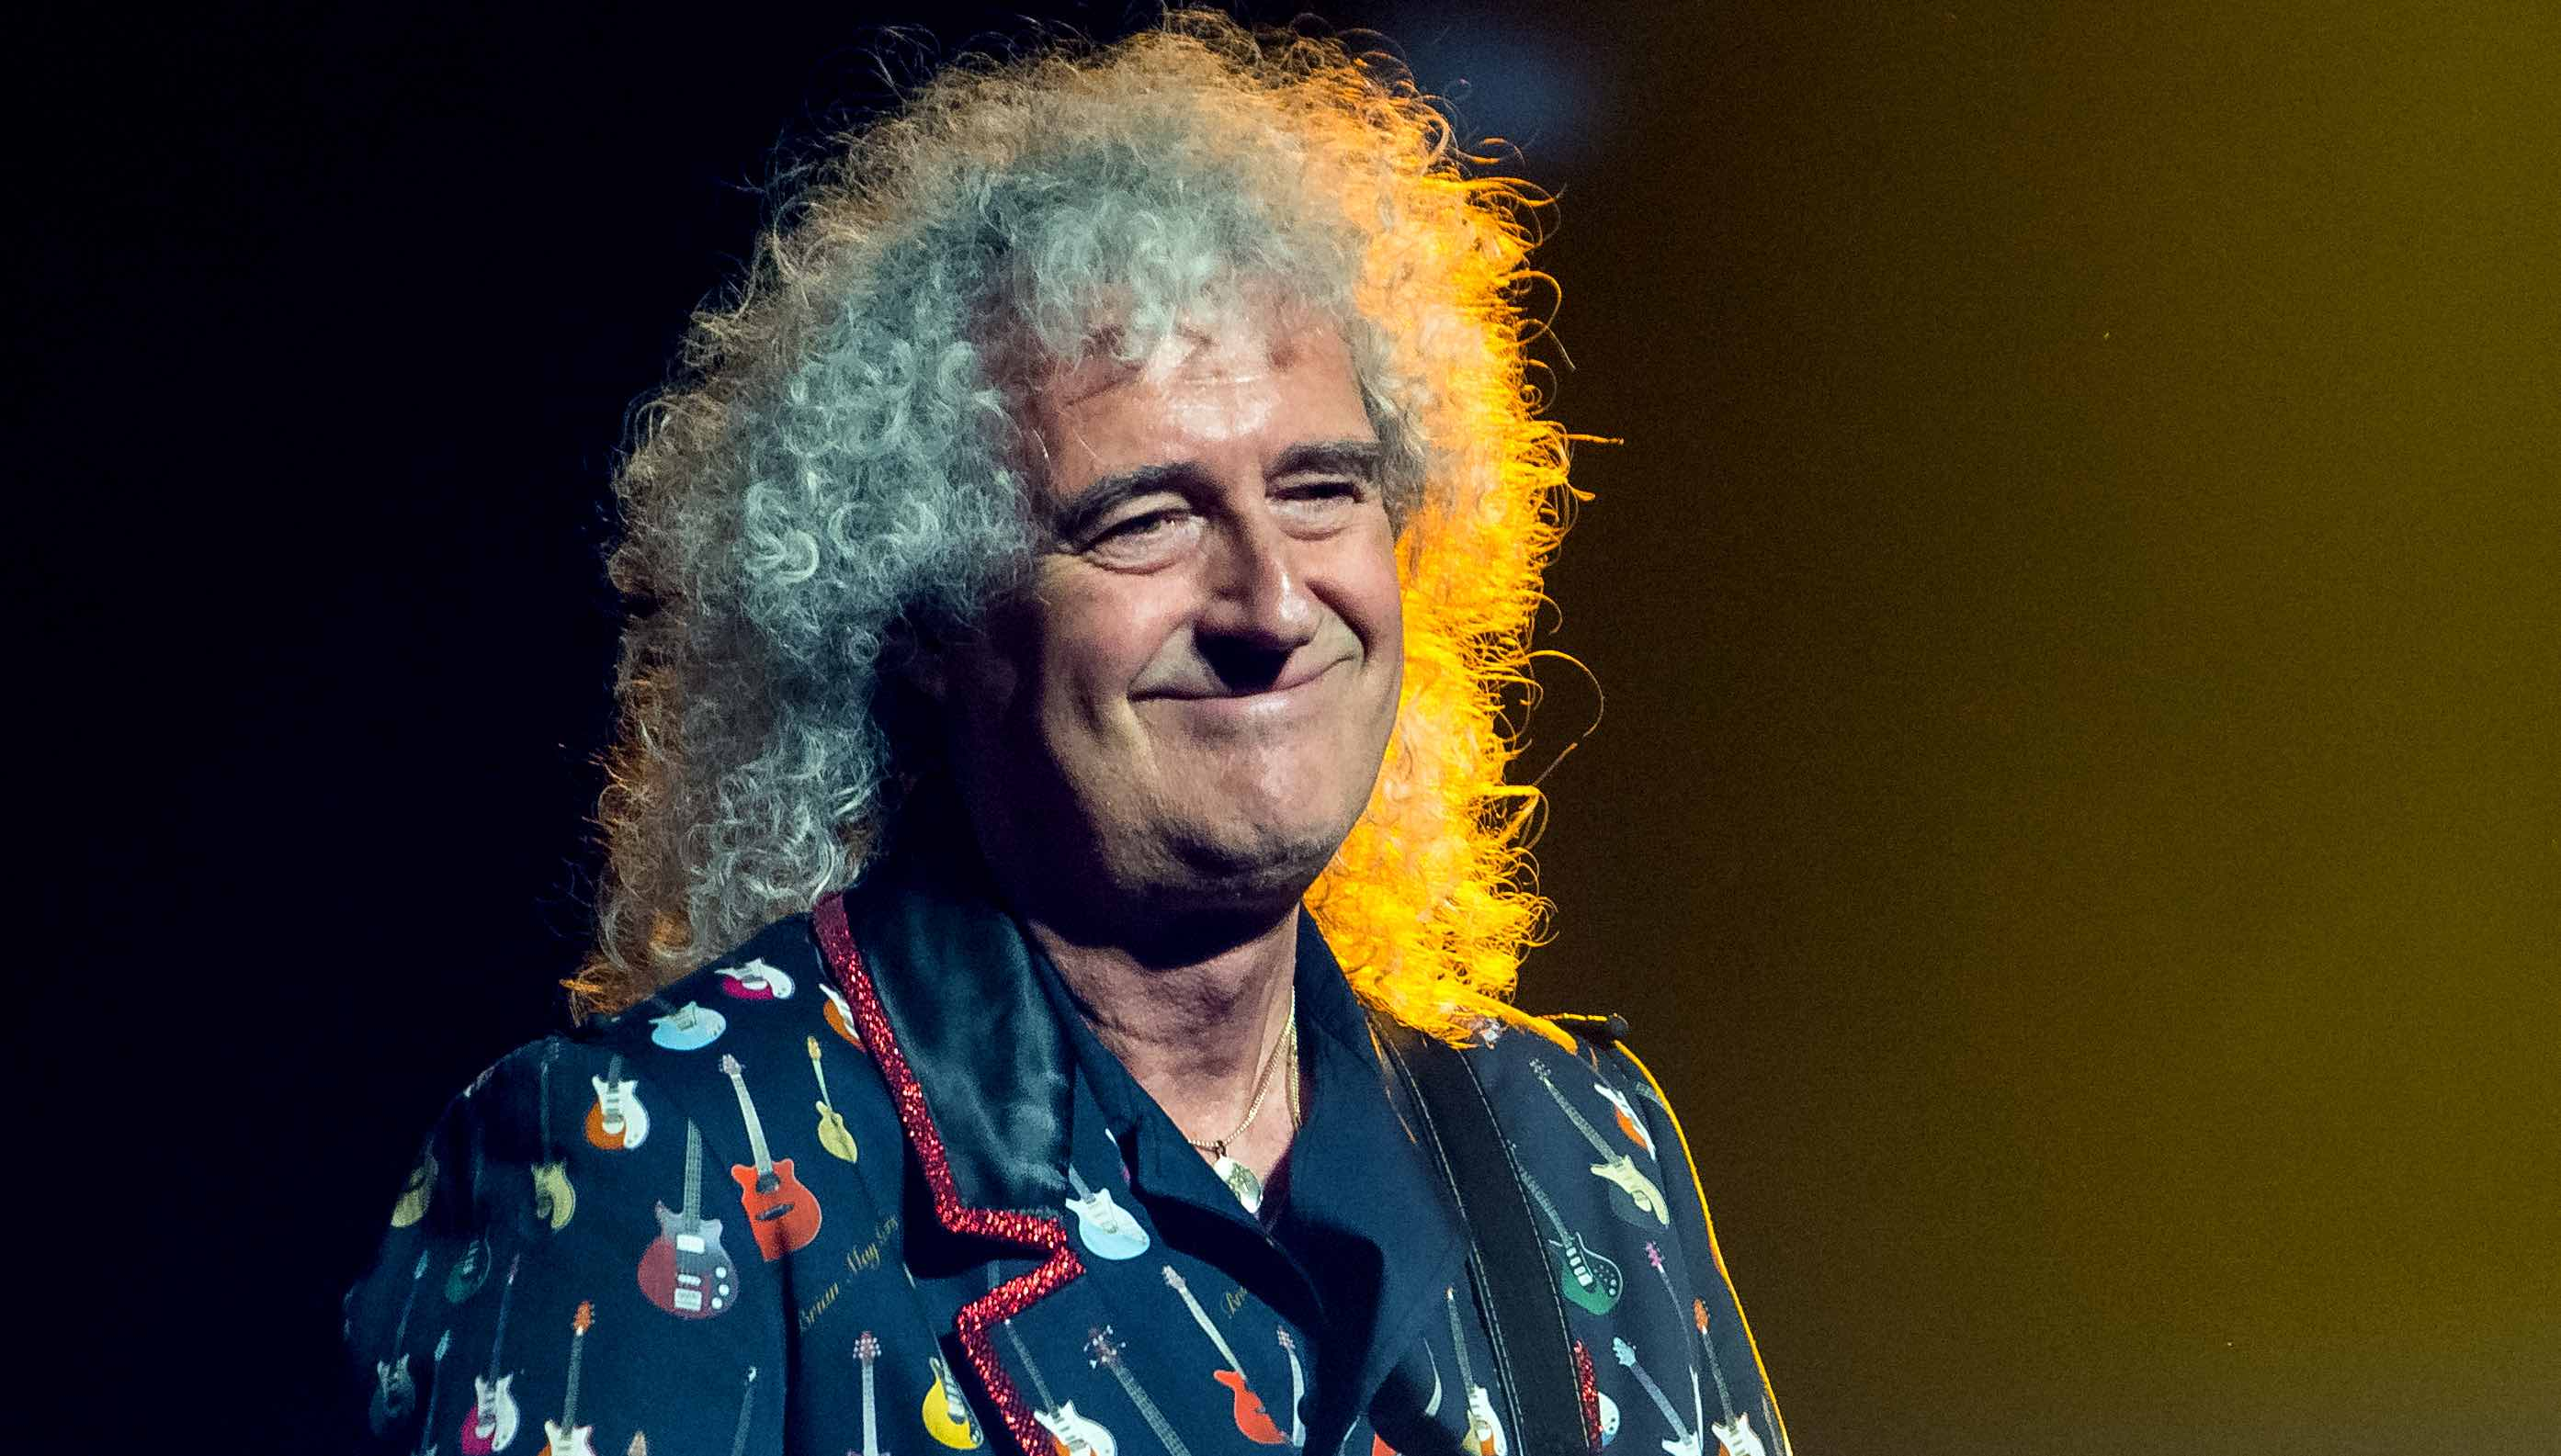 Queen: Brian May überwältigt von Fan-Reaktion in...